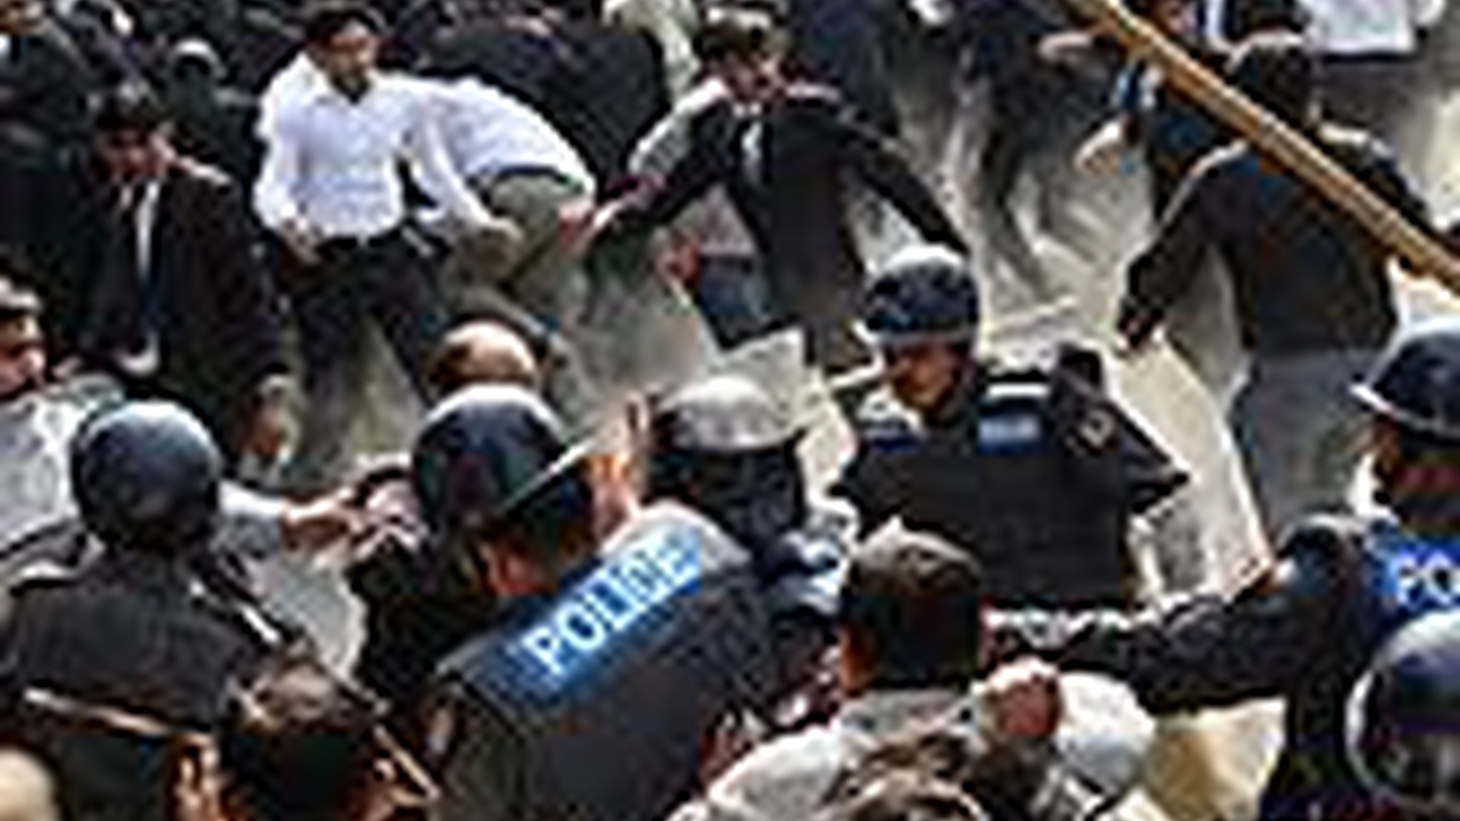 Pakistani police are cracking down on political opposition under President Musharraf 's state of emergency, creating a delicate problem for US diplomacy. Also, television and film writers are on strike in New York and Los Angeles.